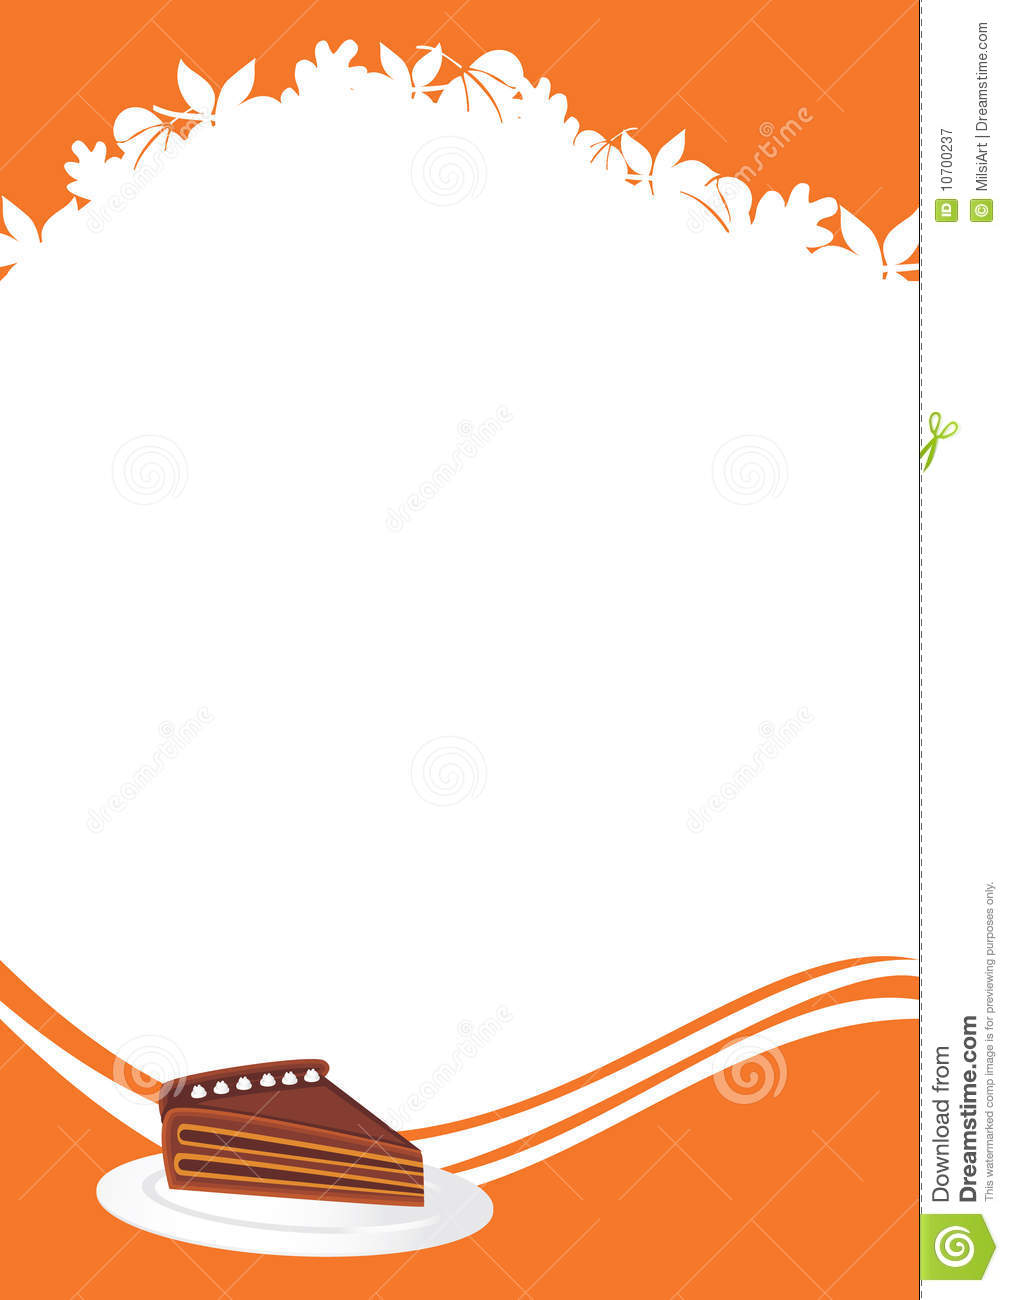 thanksgiving menu template stock vector illustration of brown